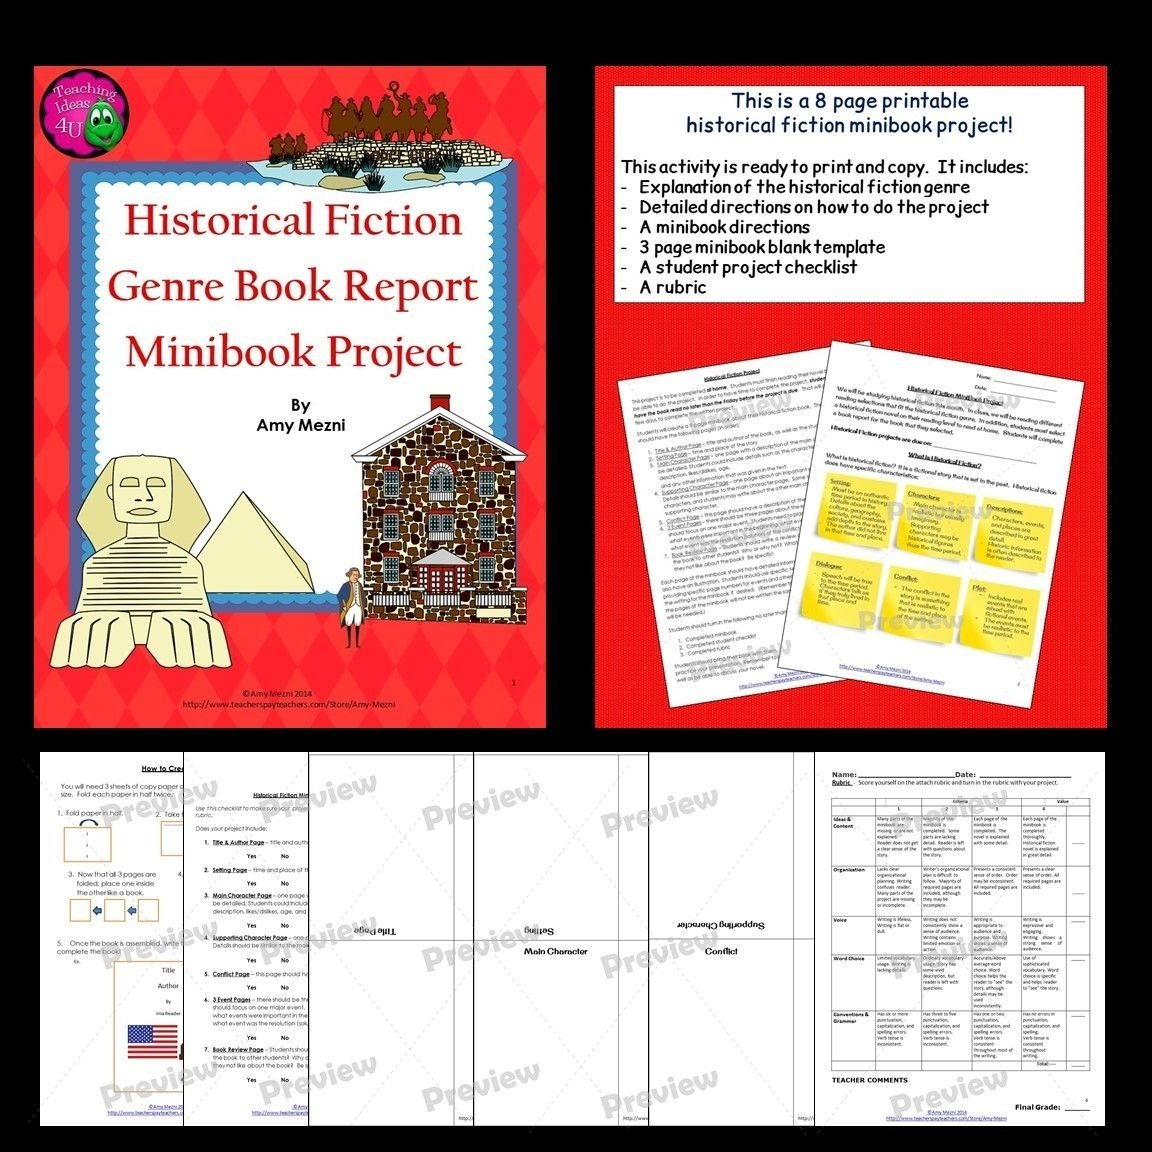 historical fiction genre minibook book report project & rubric